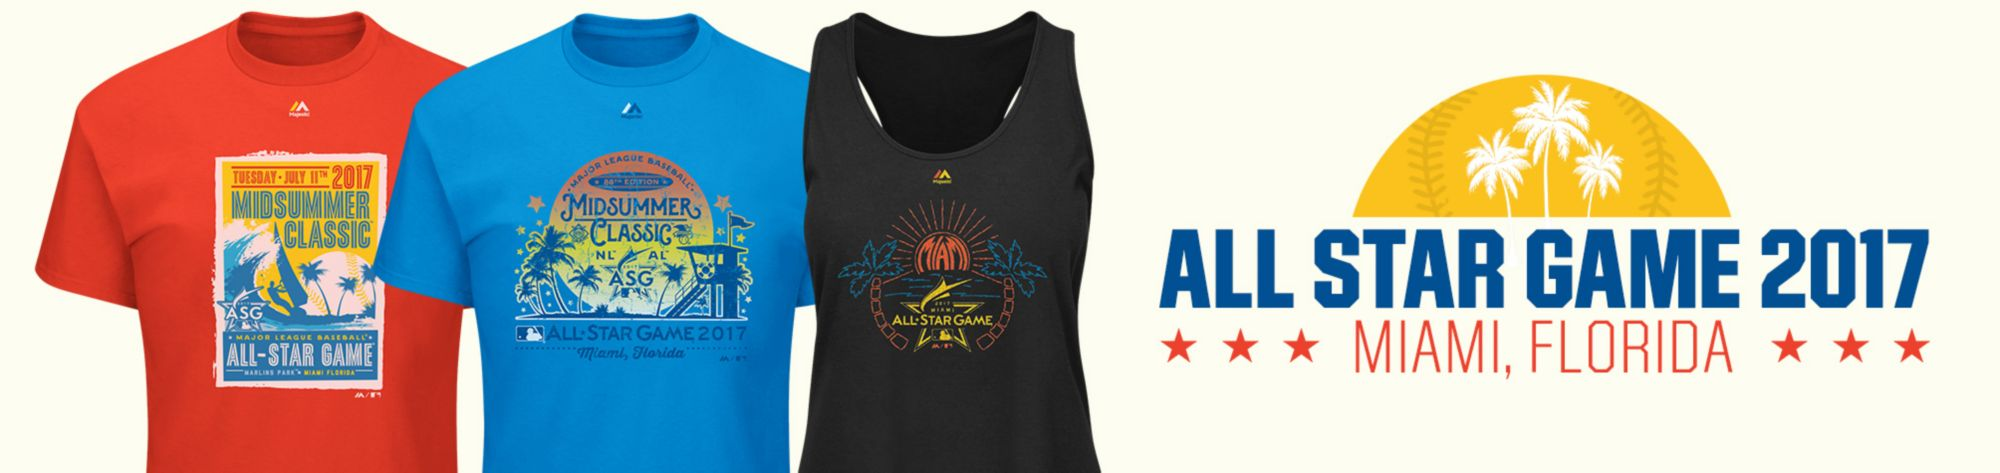 MLB All Star Apparel & Gear